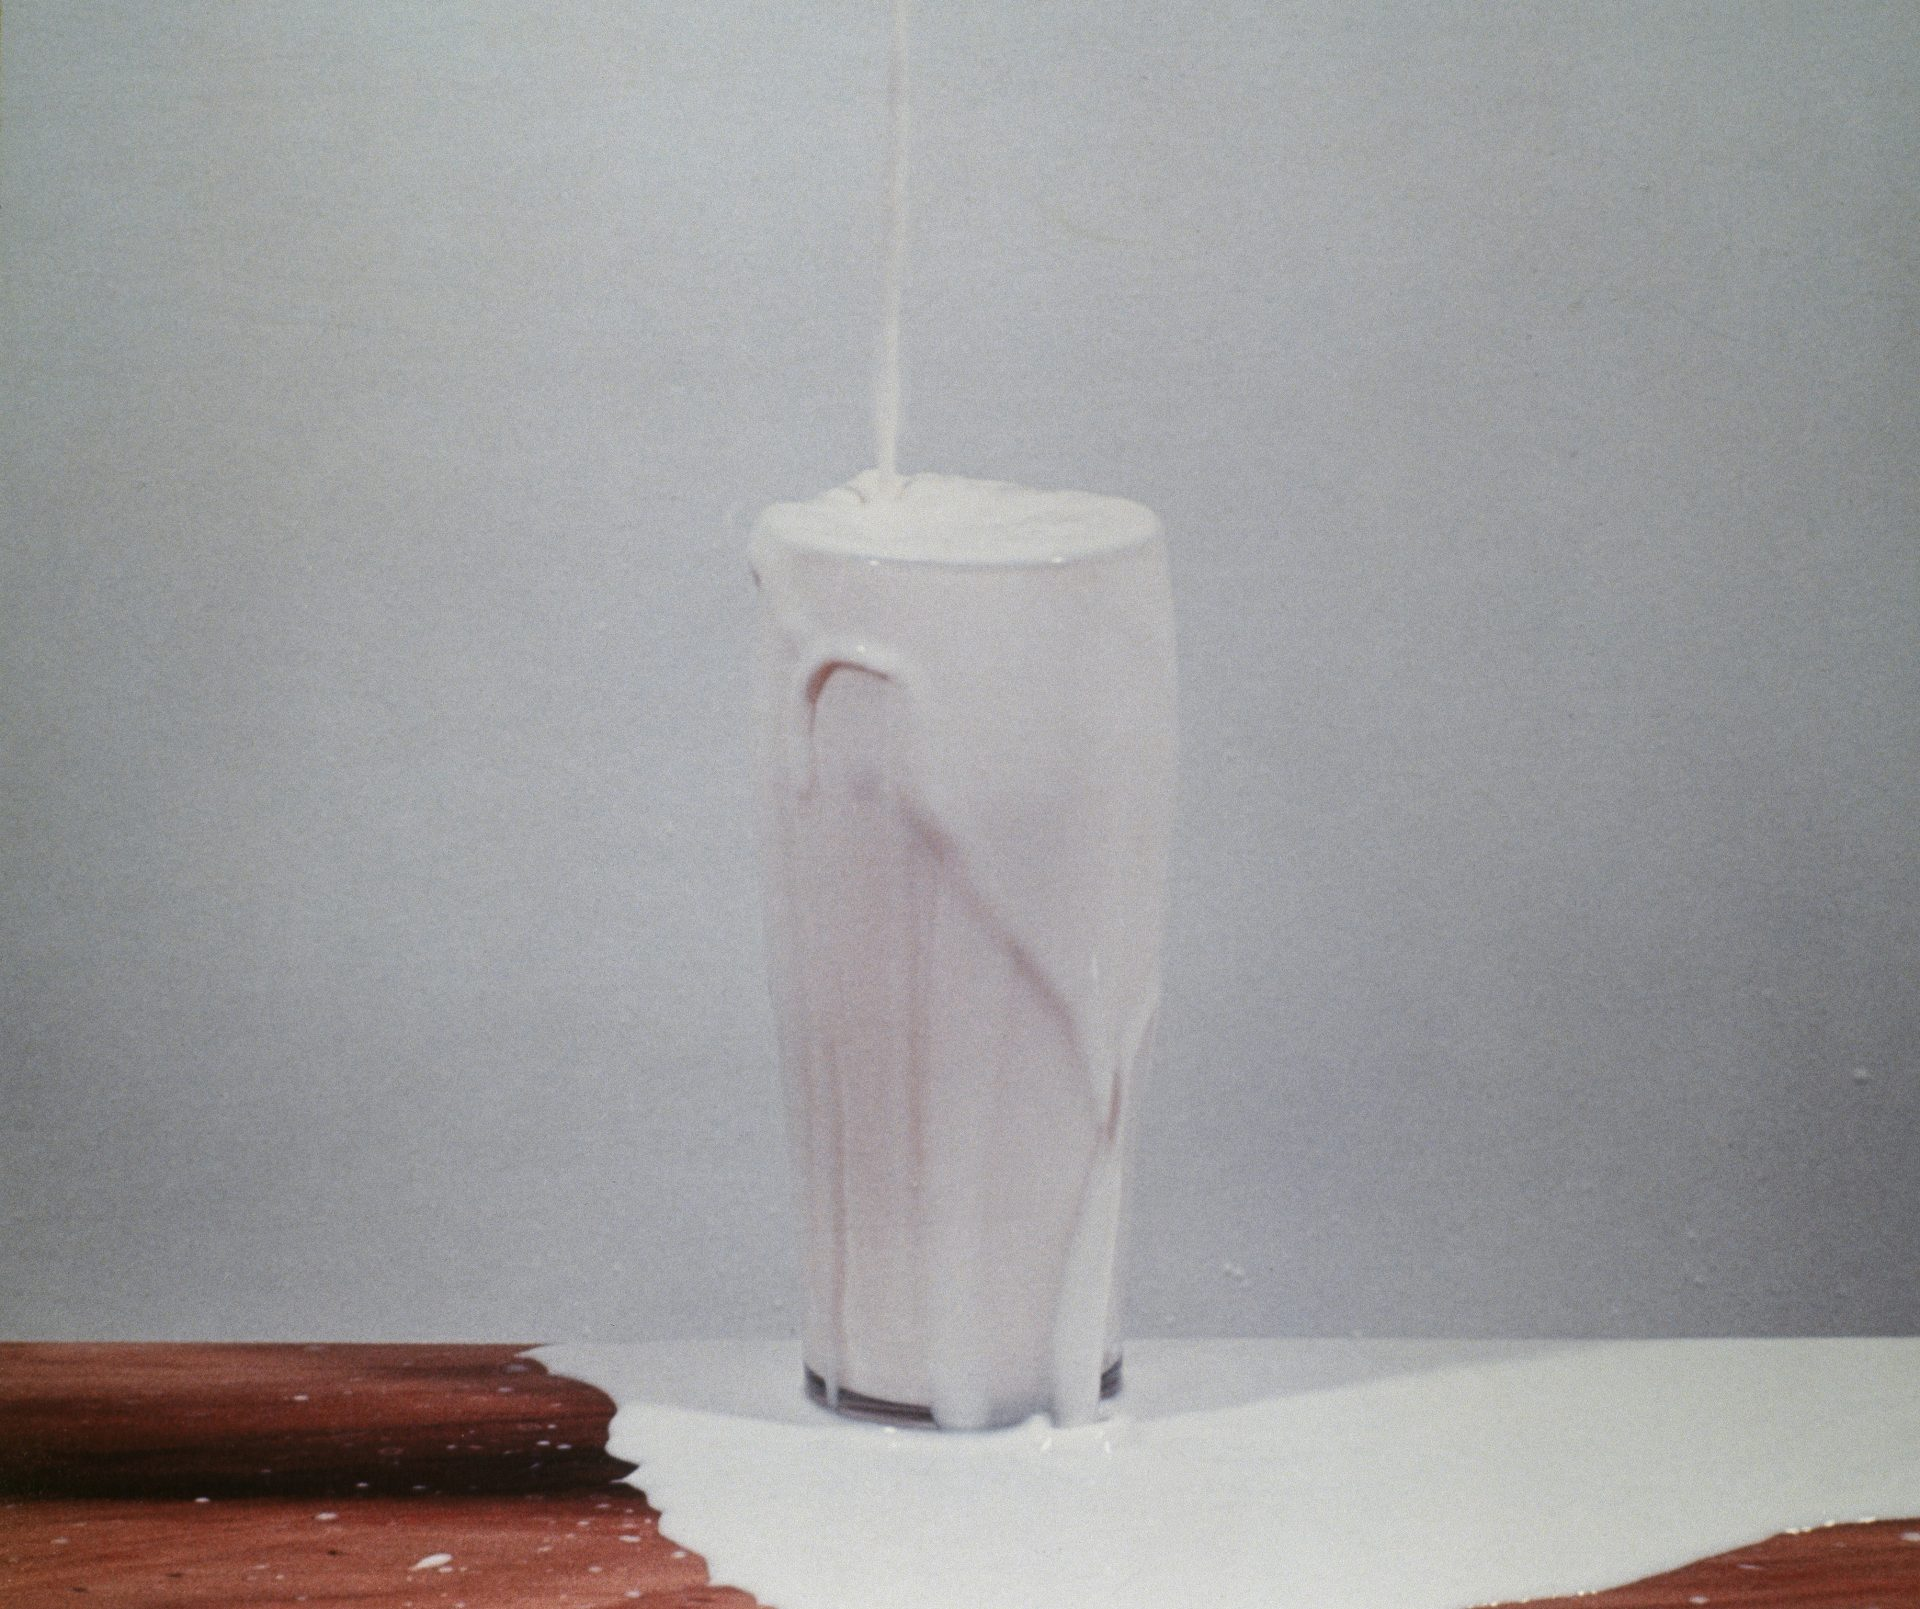 David Lamelas - To Pour Milk Into a Glass, 1972